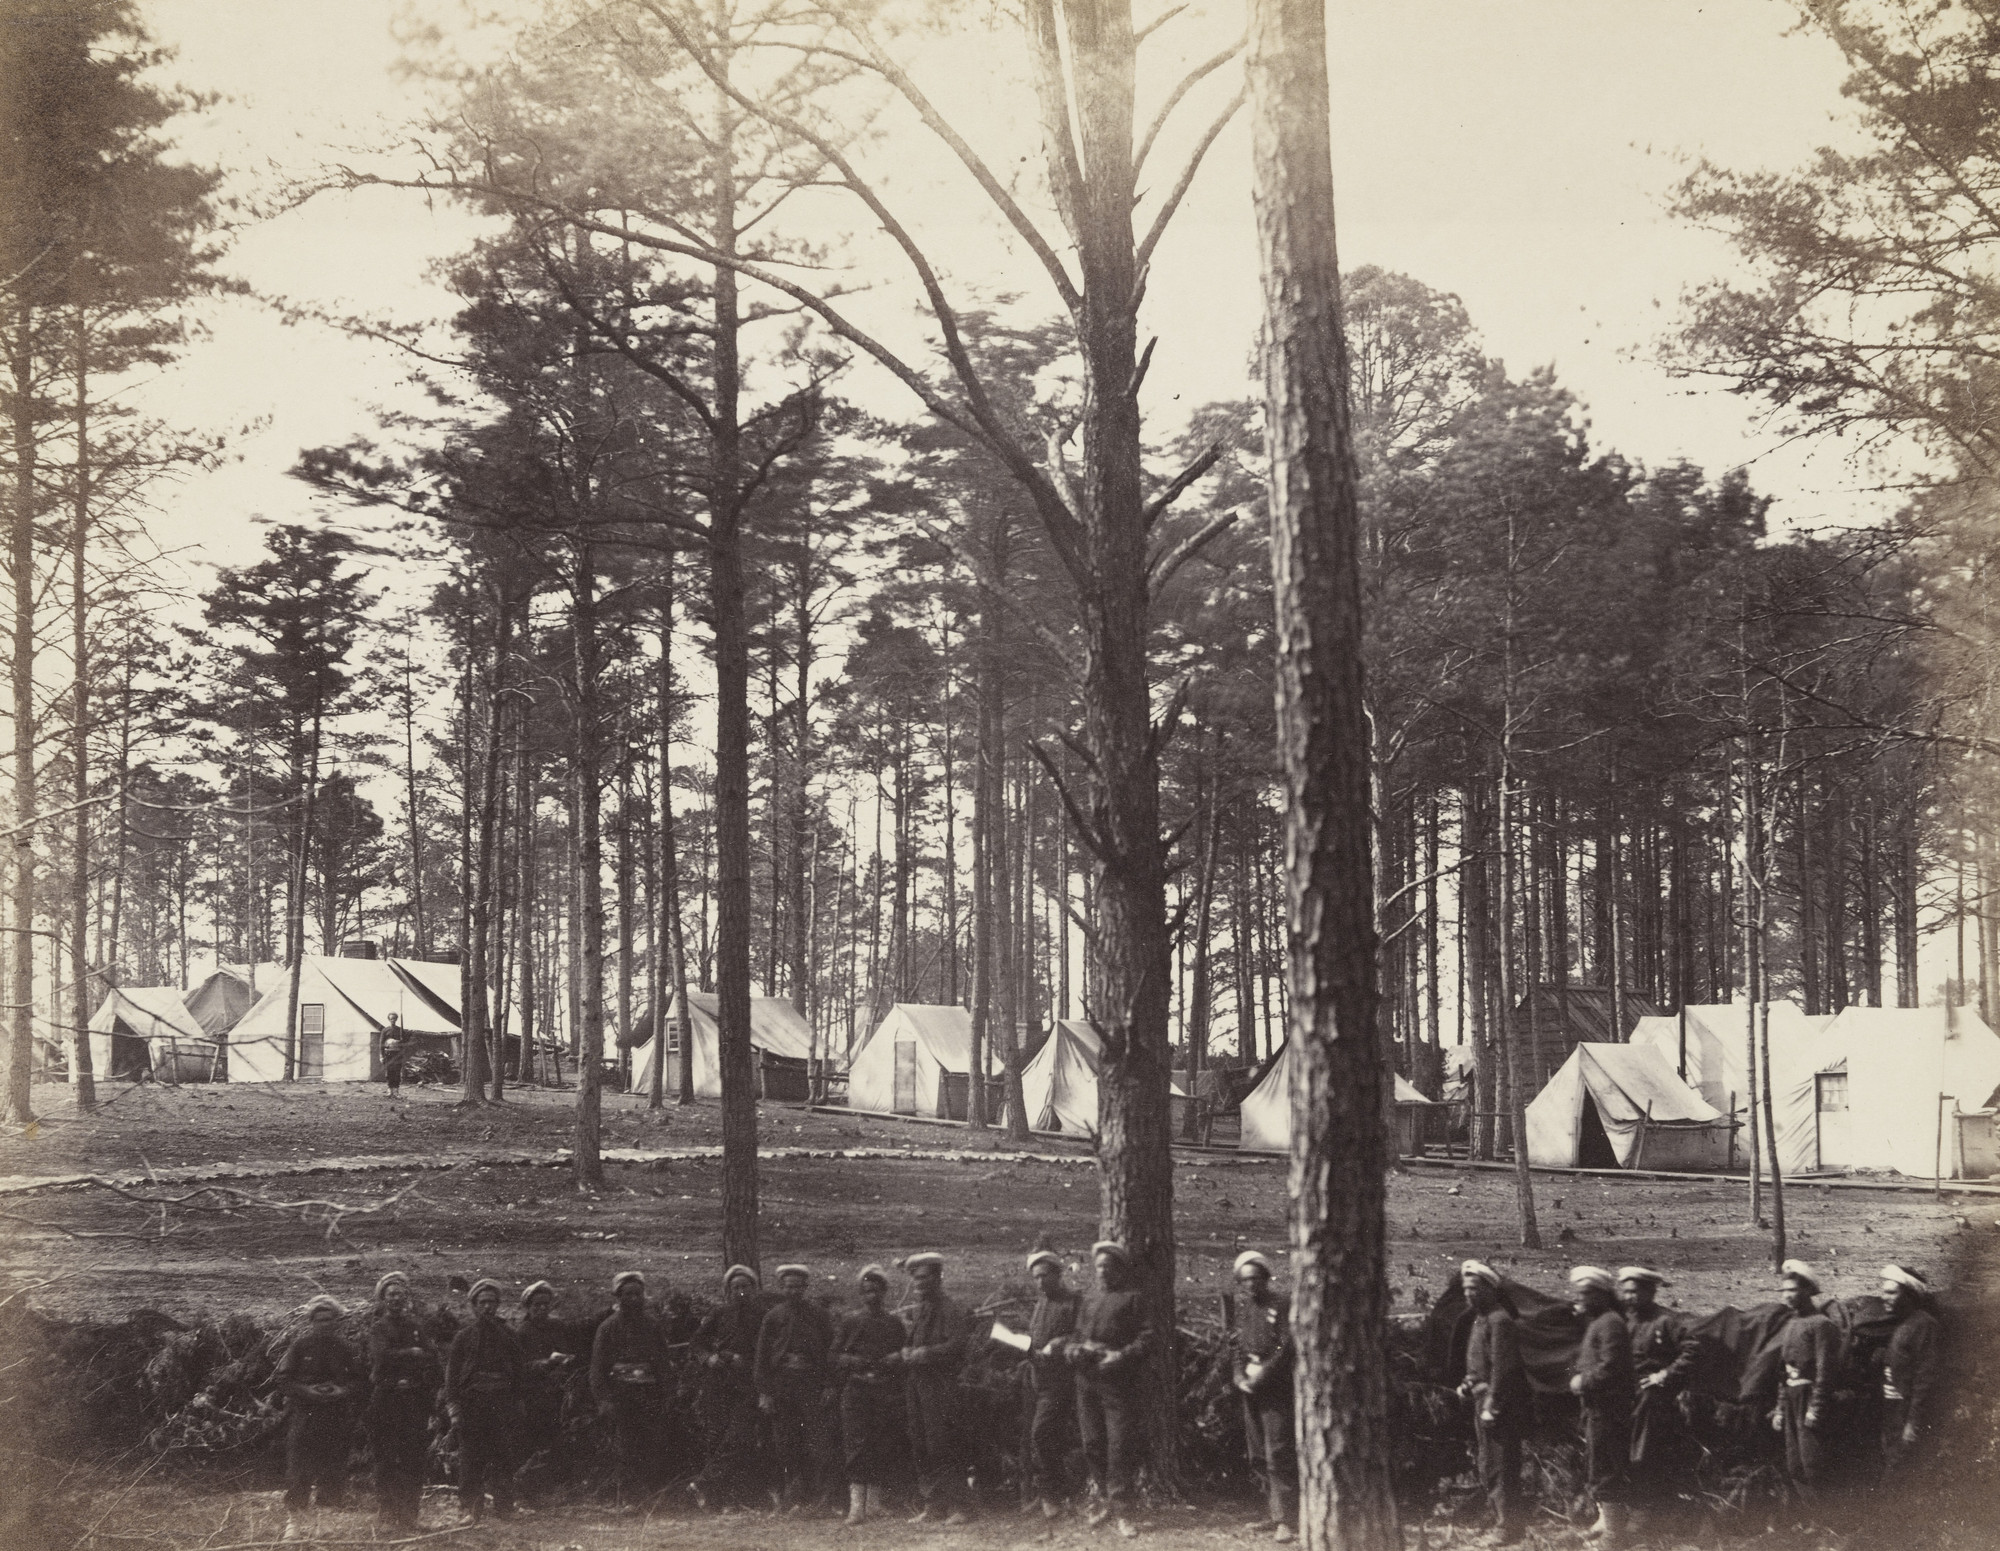 Alexander Gardner, Timothy O'Sullivan. Head-Quarters Army of the Potomac (Brandy Station, Virginia). February, 1864